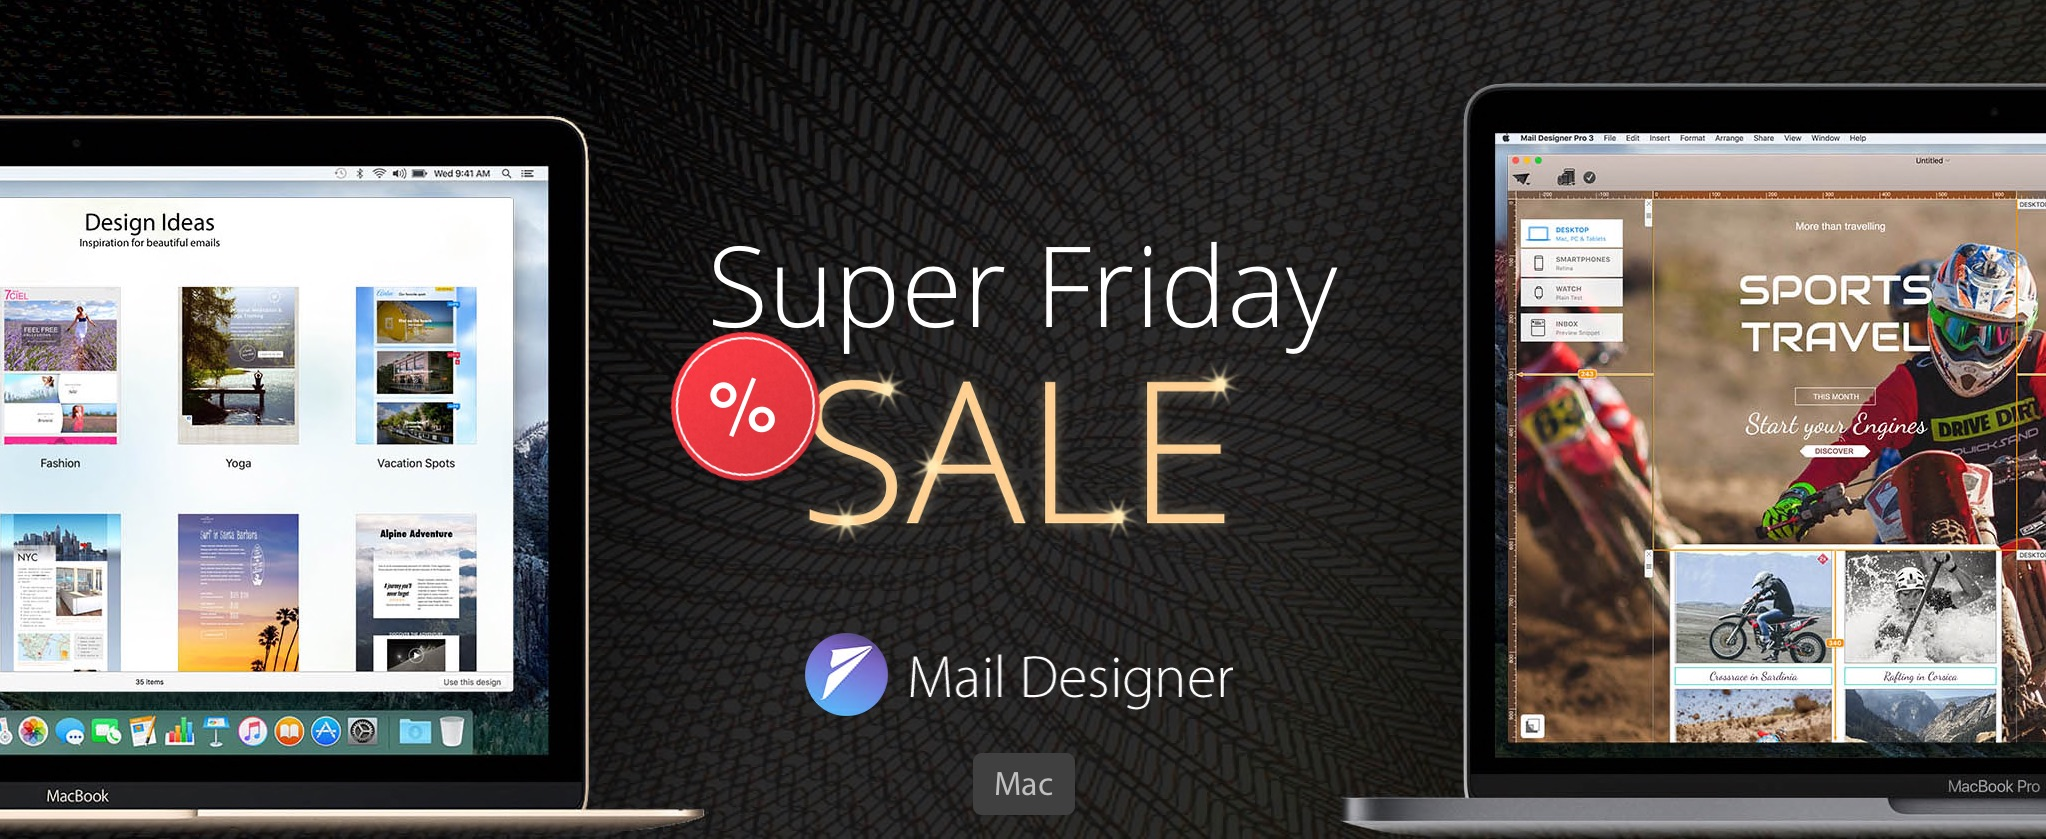 superfriday-mood-mail-designer